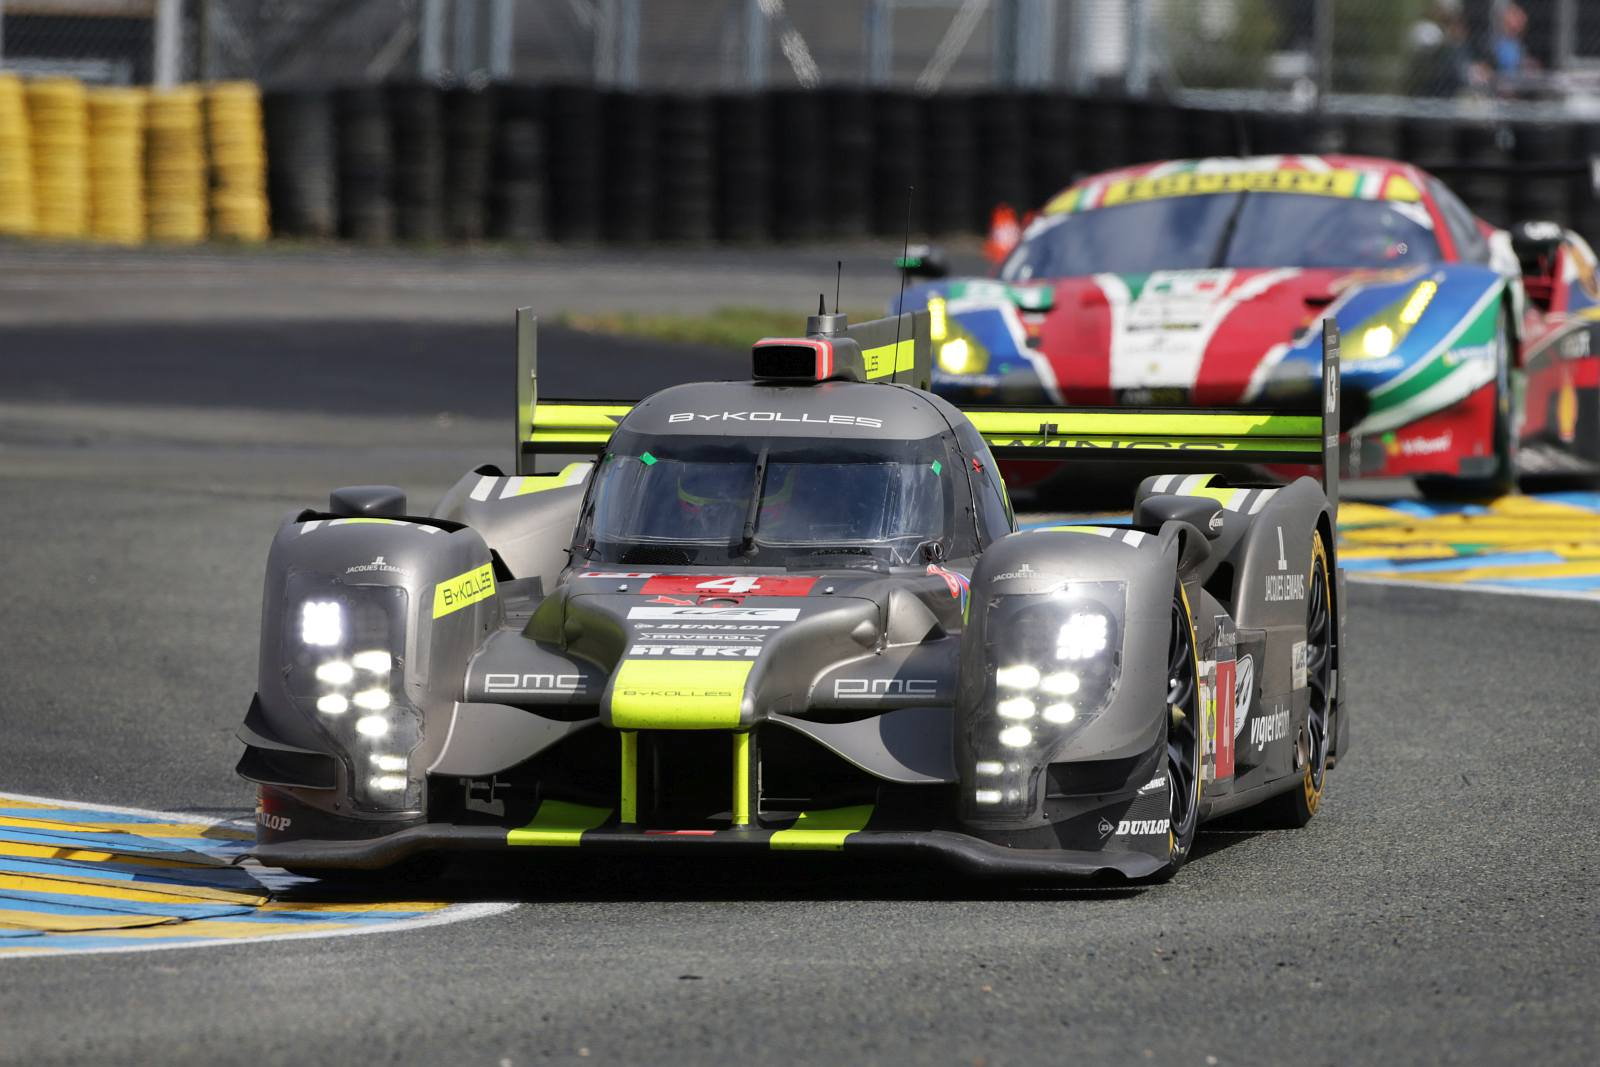 byKOLLES-racing-WEC-le-mans-2016-36